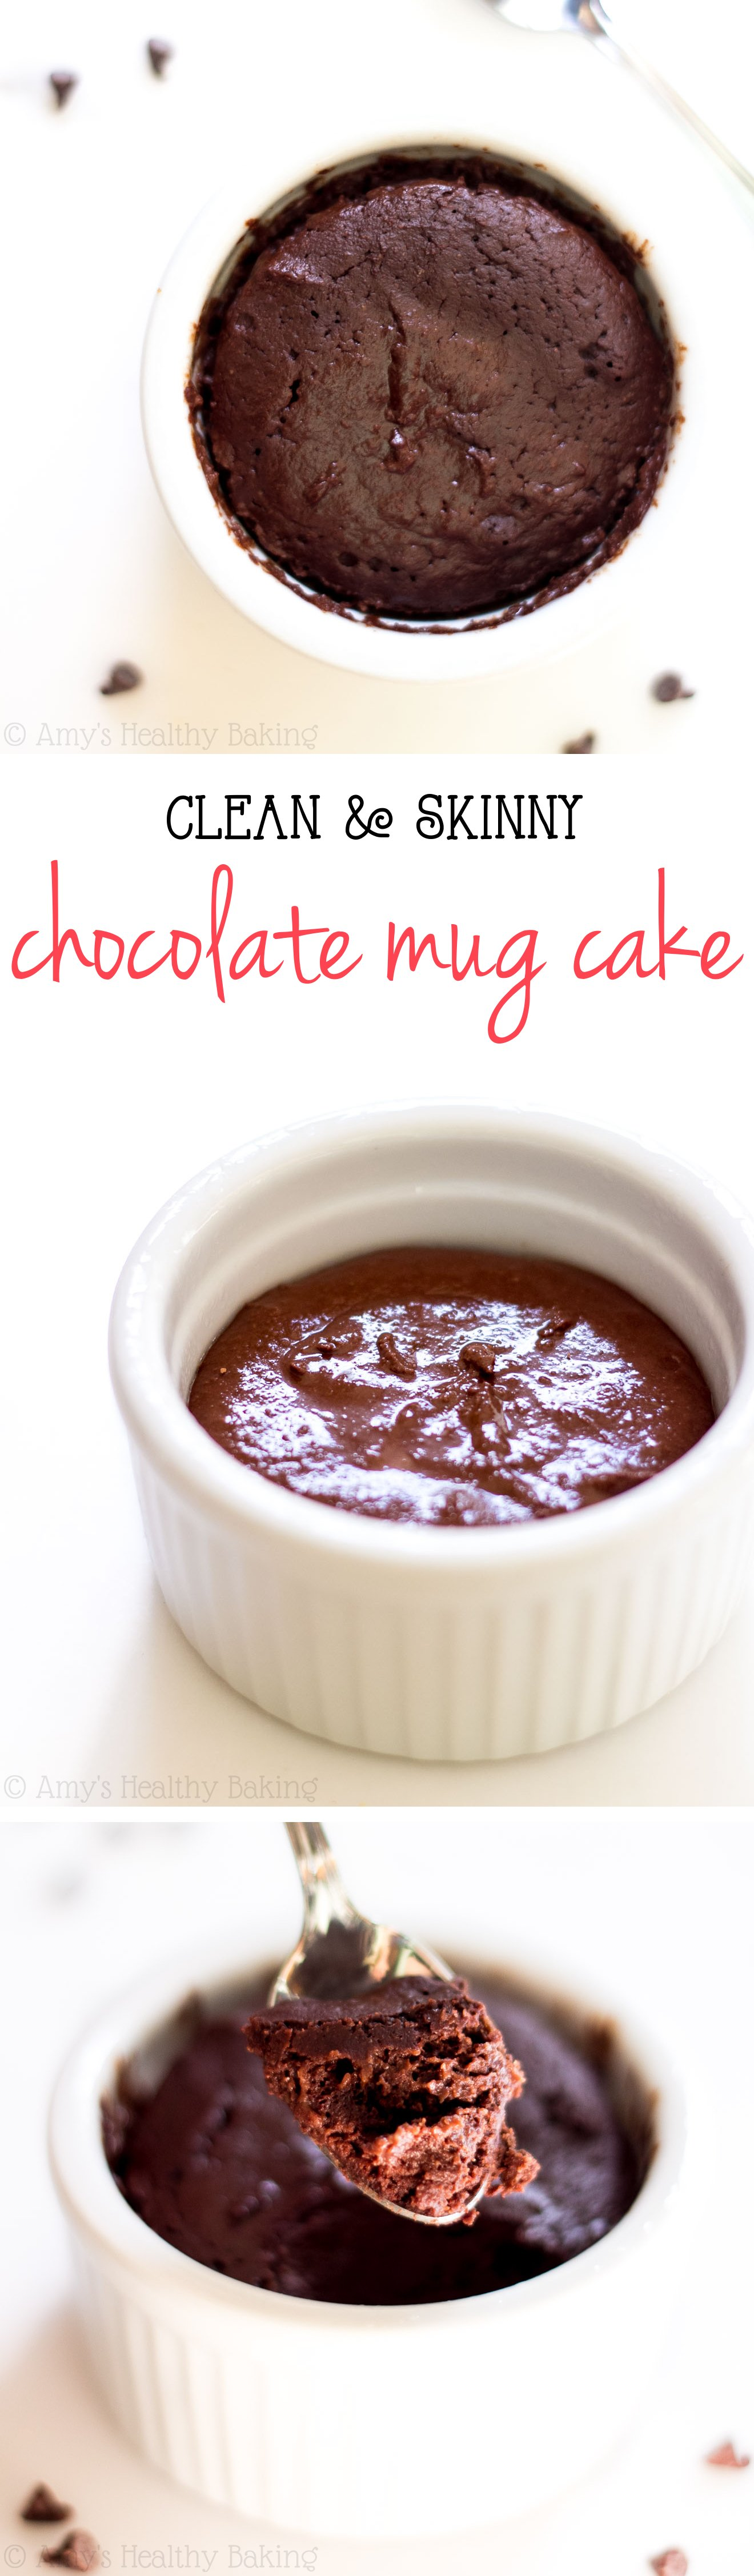 Single Serving Chocolate Pudding Cake Recipe